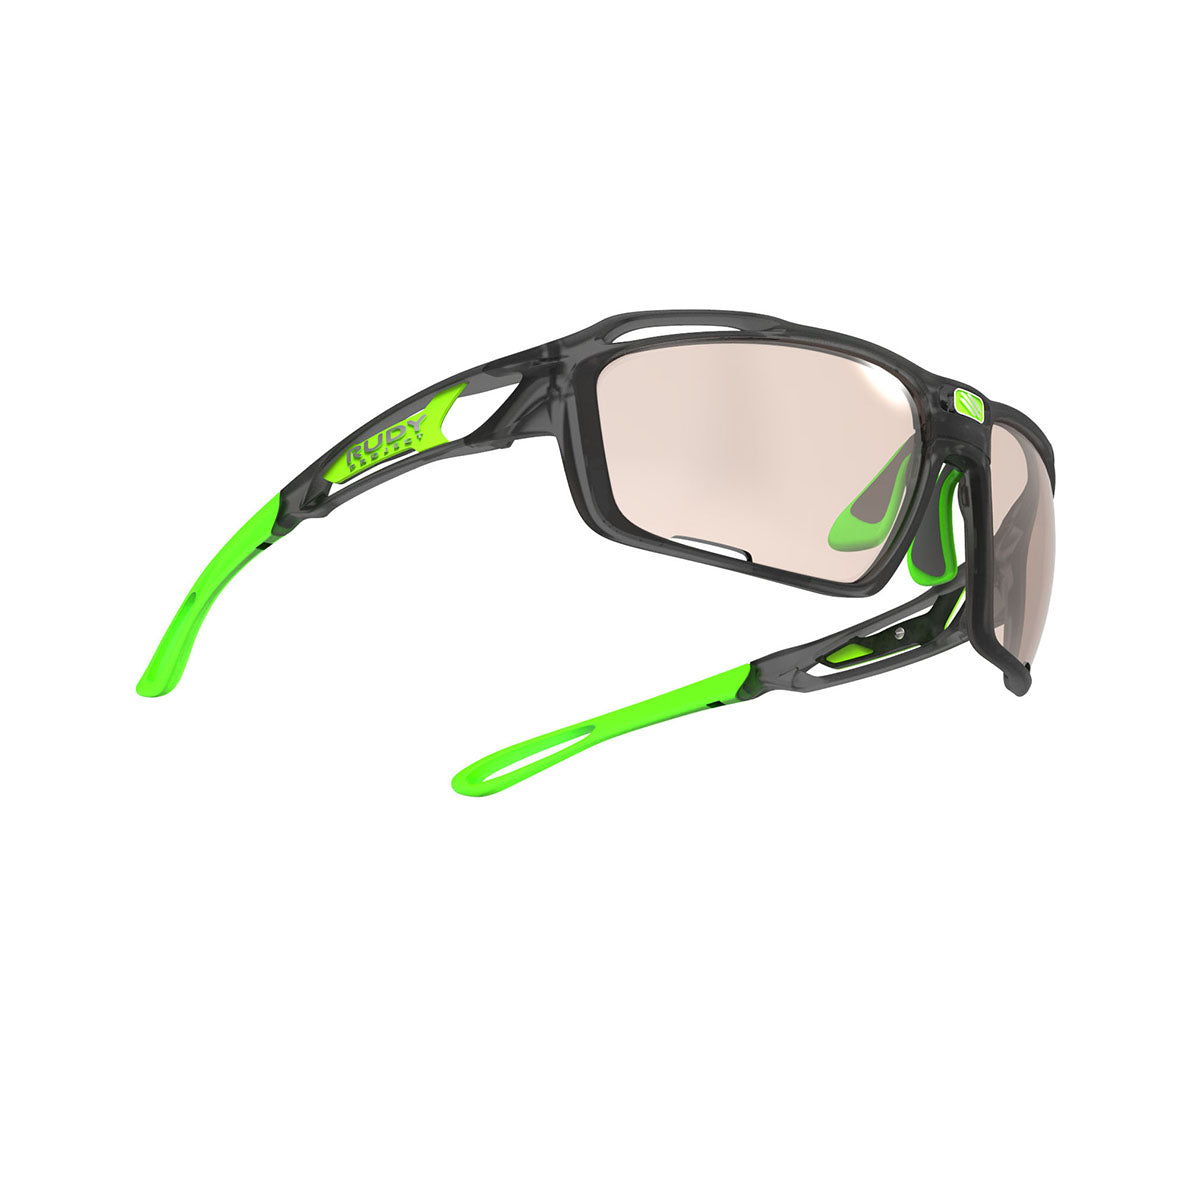 Rudy Project - Sintryx - frame color: Ice Graphite Matte - lens color: ImpactX-2 Photochromic Clear to Laser Brown - Bumper Color:  - photo angle: Bottom Front Angle Variant Hover Image